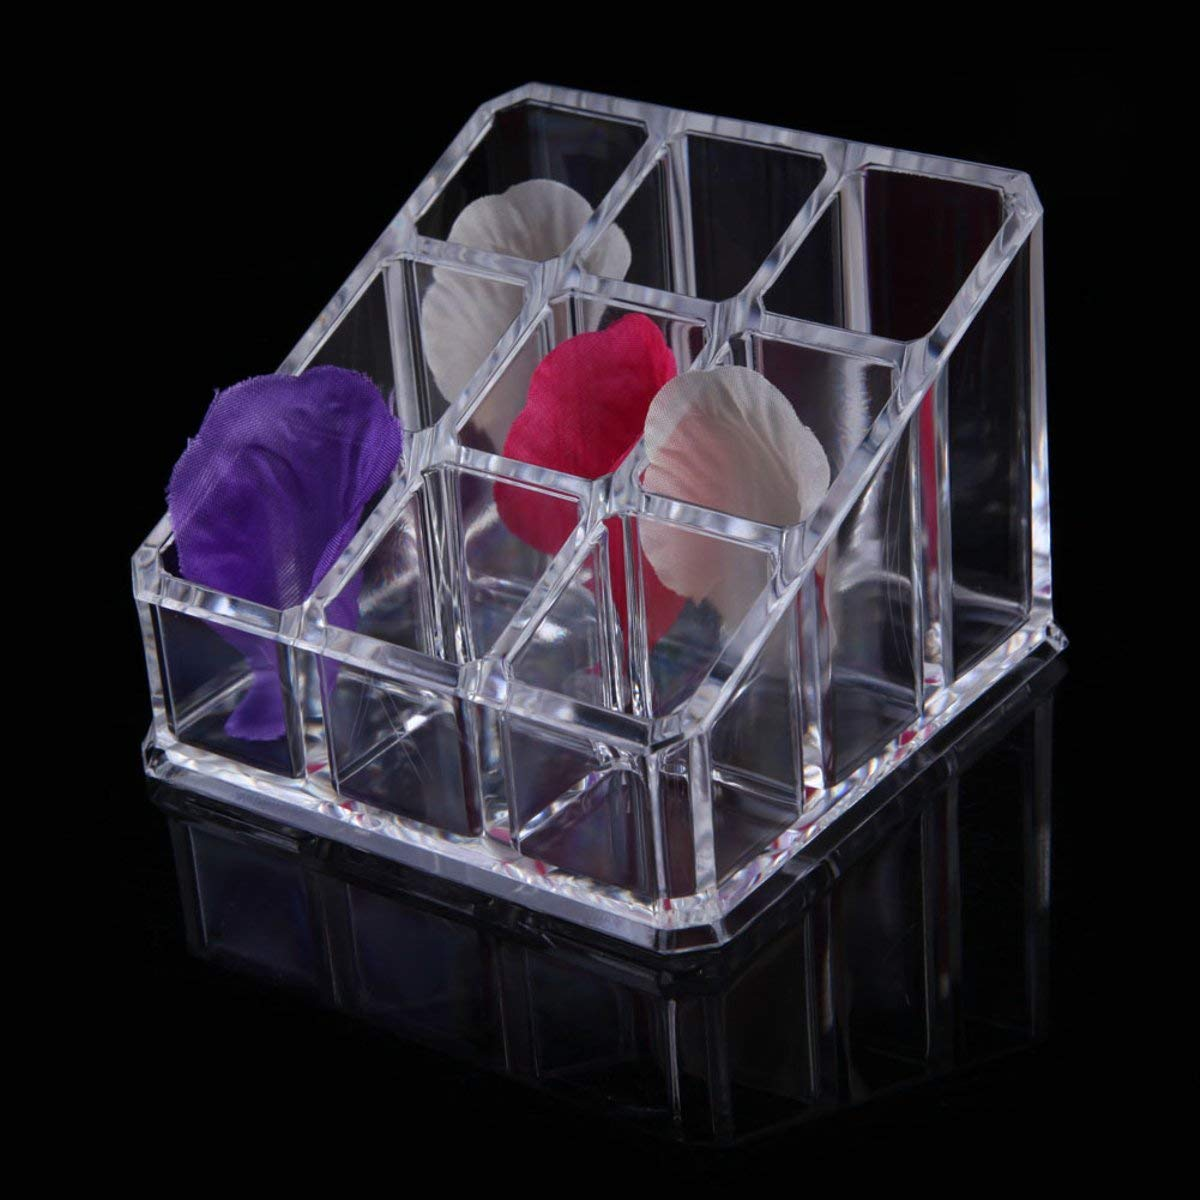 361c03bf935c Get Quotations · Tacoli Lipstick Holder, Stand Cosmetic Makeup Organizer, 9  Grid Makeup Organizer Box Clear Acrylic